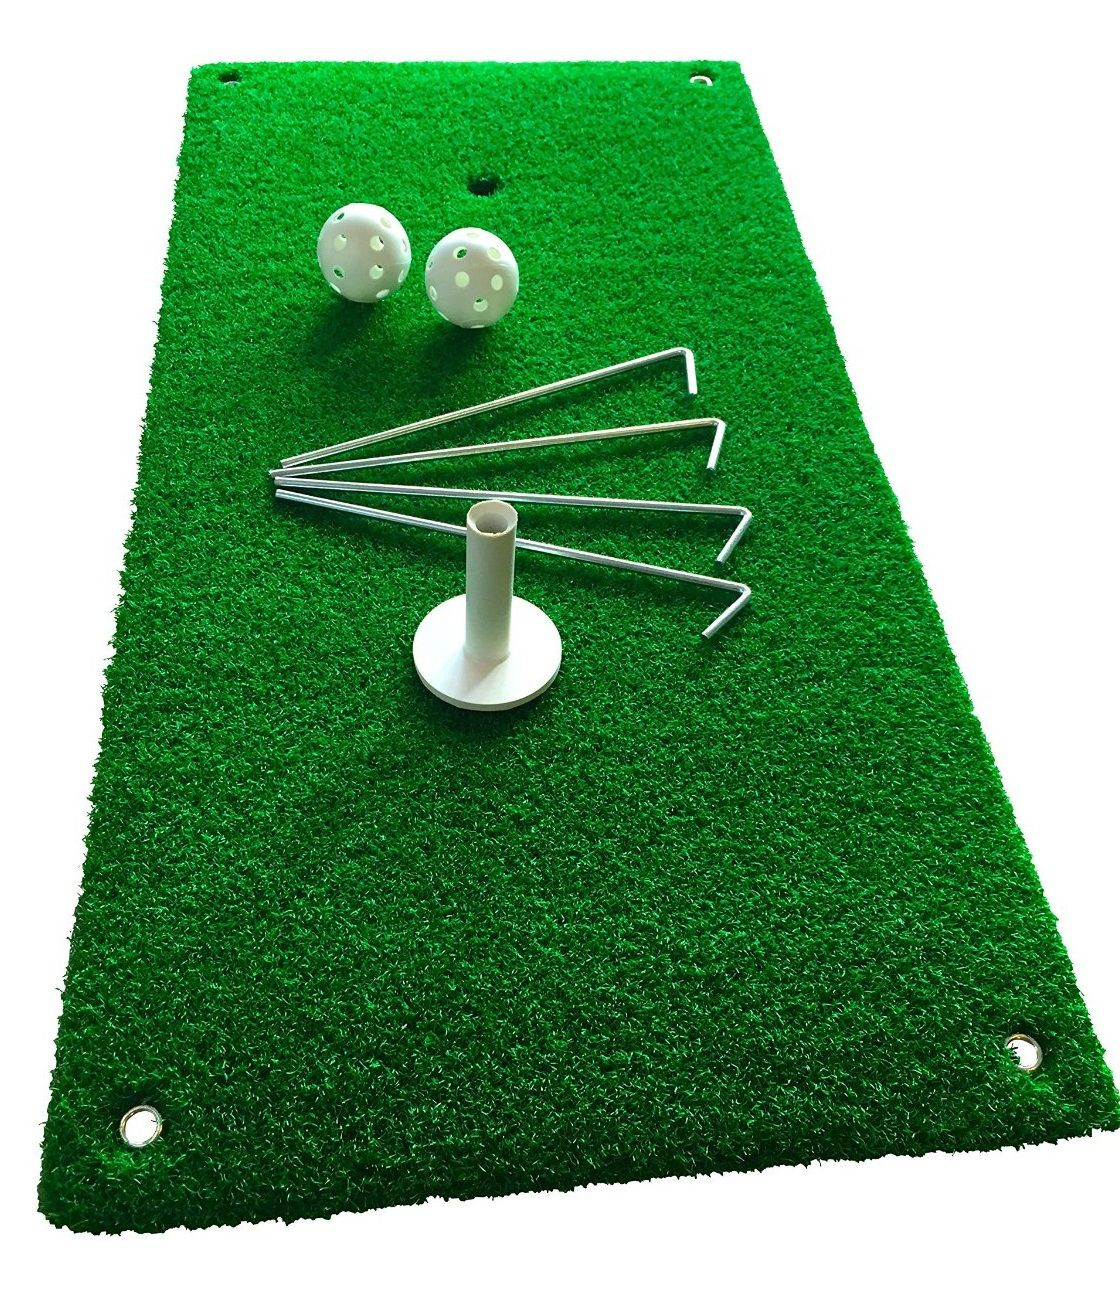 hitting exclusive fanfest durapro mlb mat gallery images golf pro mats all